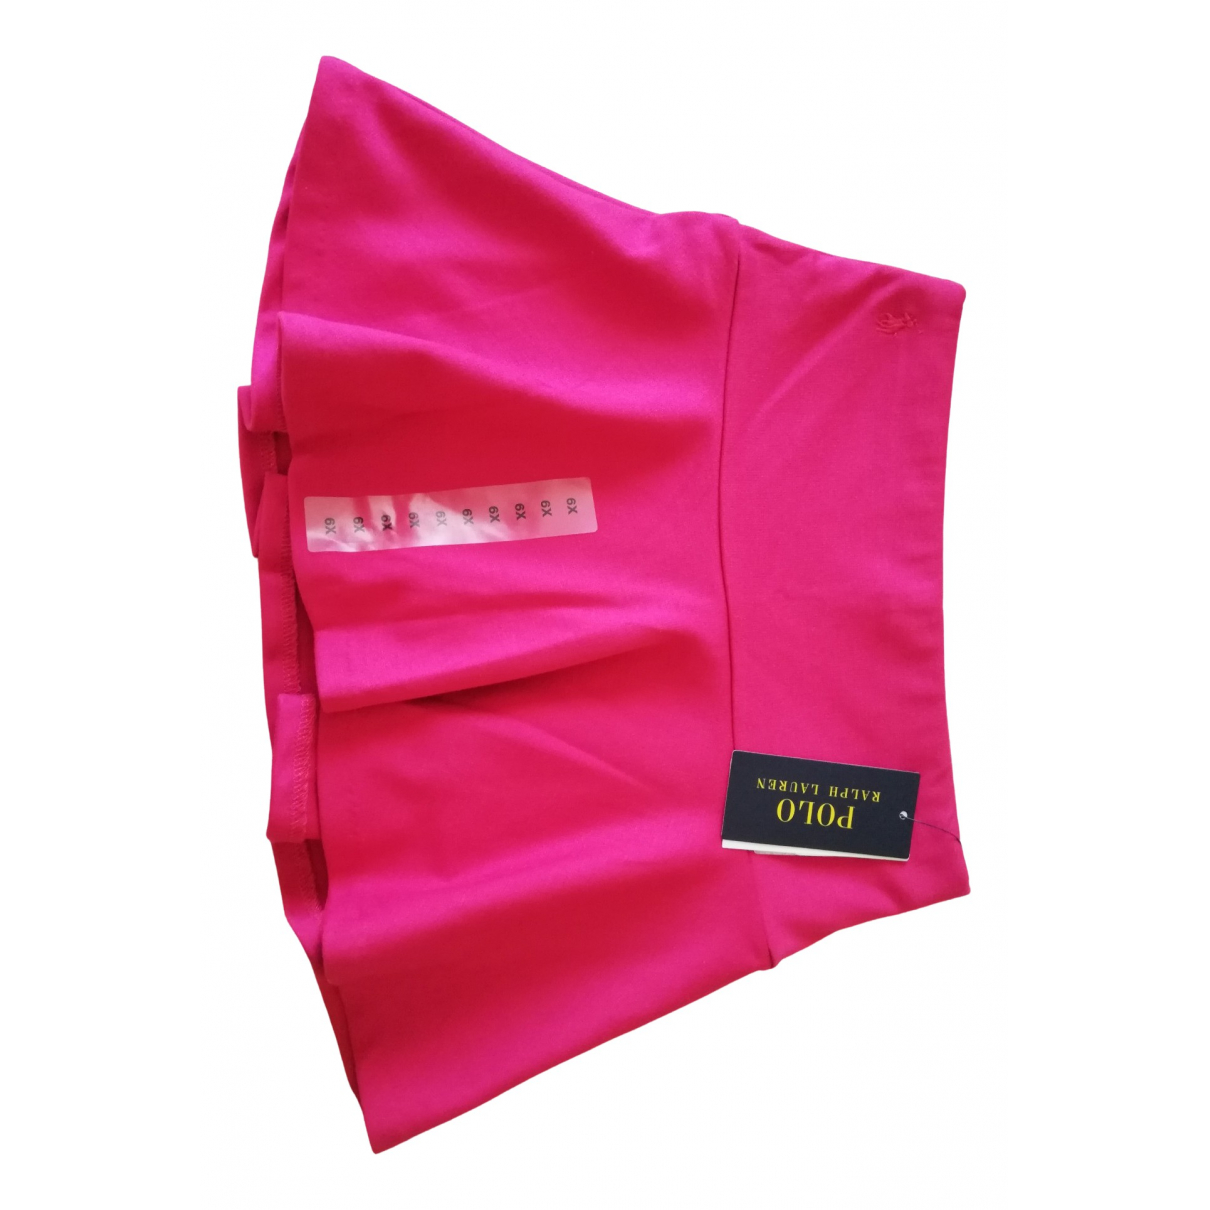 Polo Ralph Lauren \N Pink skirt for Kids 6 years - up to 114cm FR